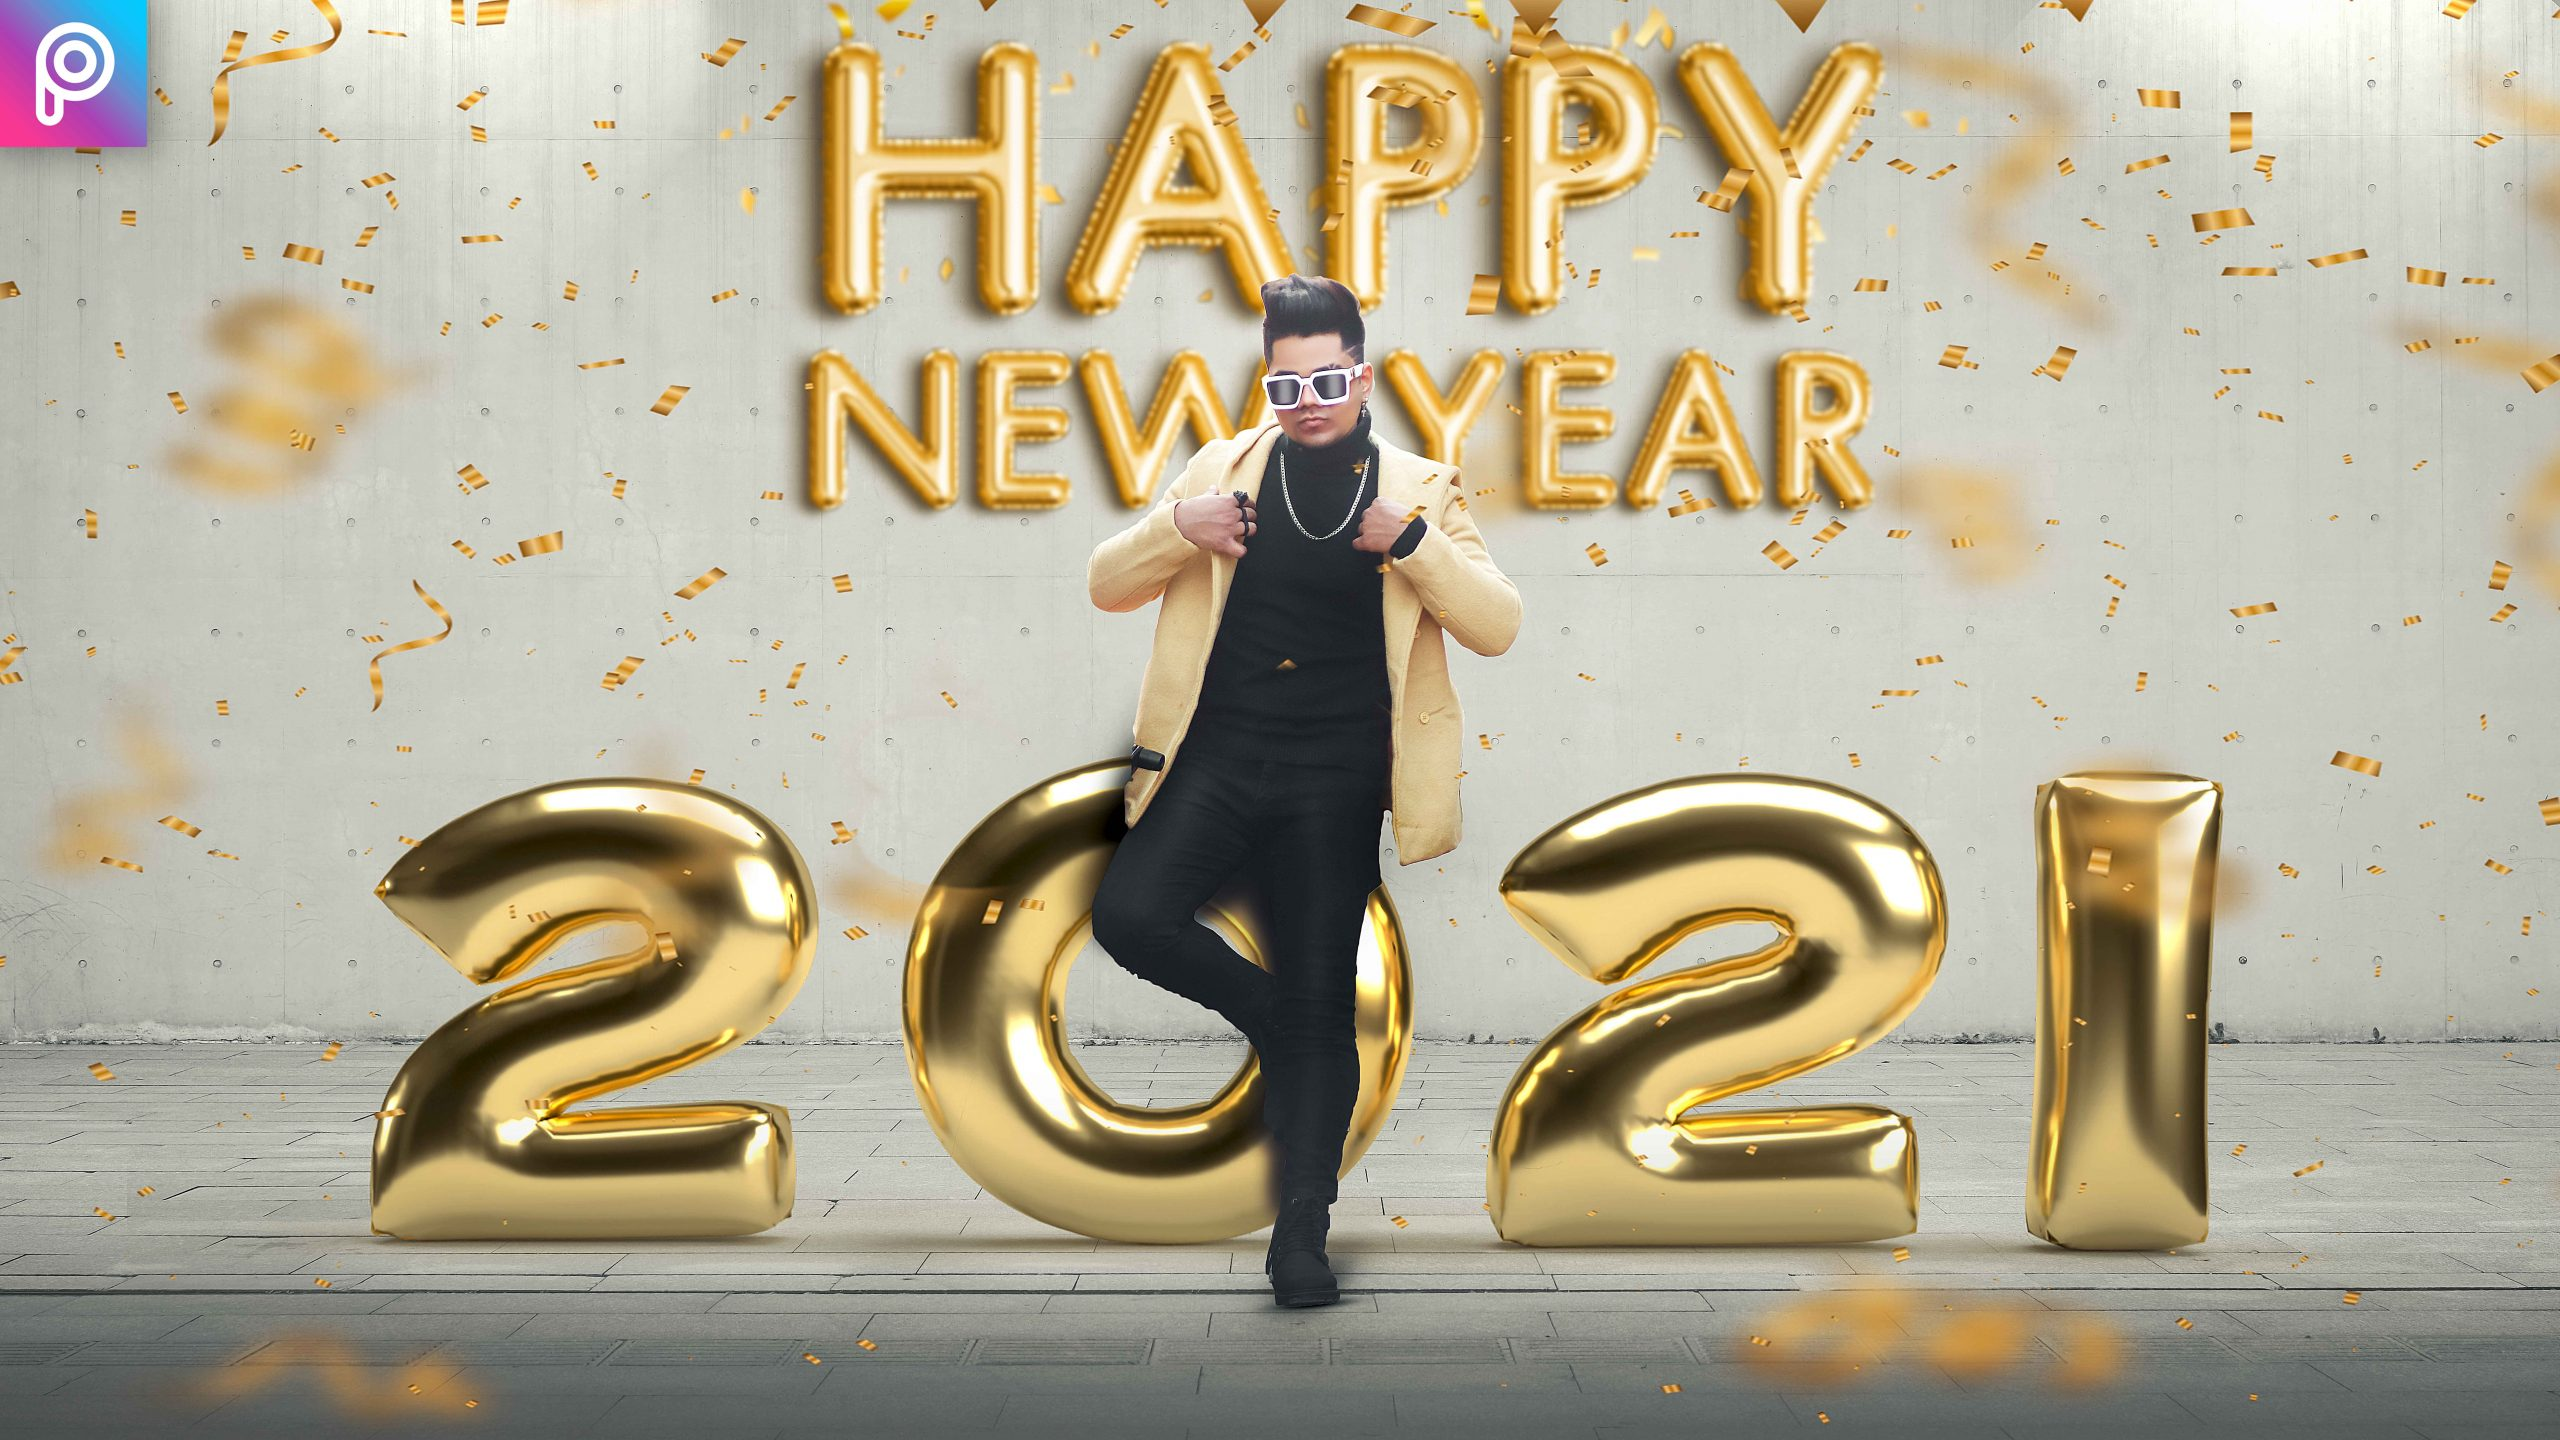 Happy New Year 2021 Photo Editing Background Png Free Download Hd wallpapers and background images. happy new year 2021 photo editing